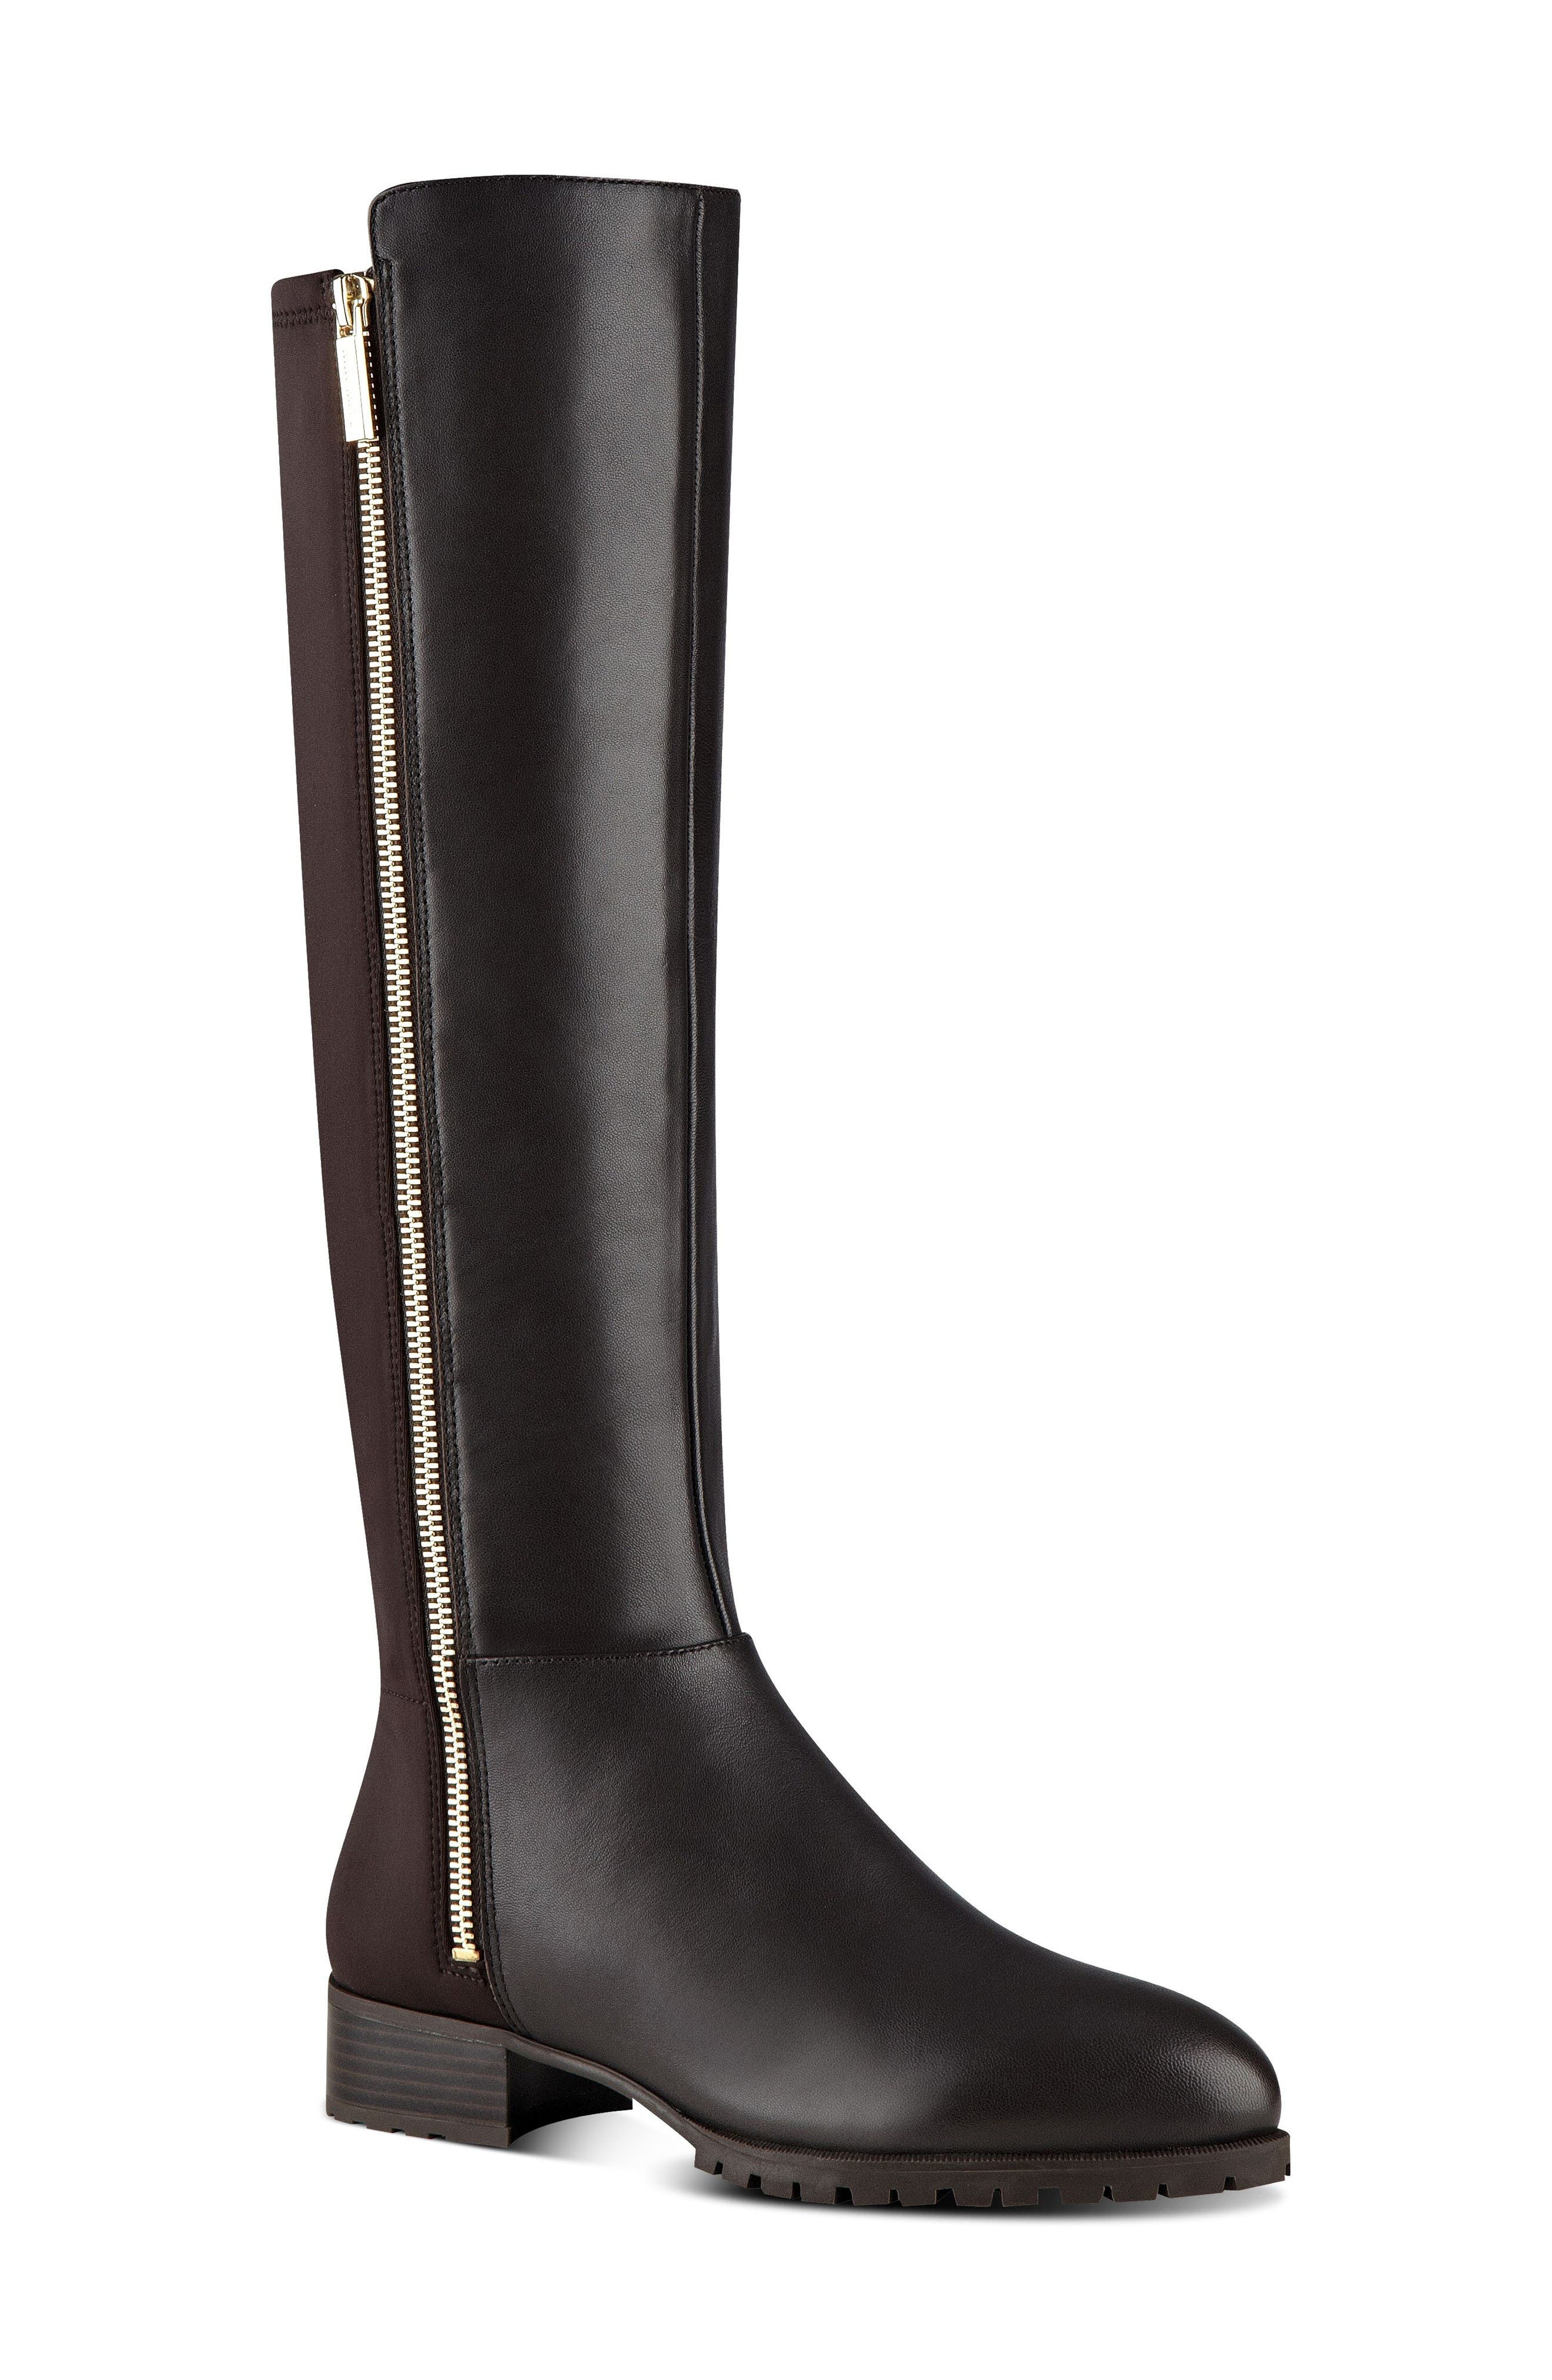 Alternate Image 1 Selected - Nine West 'Legretto' Riding Boot (Women)